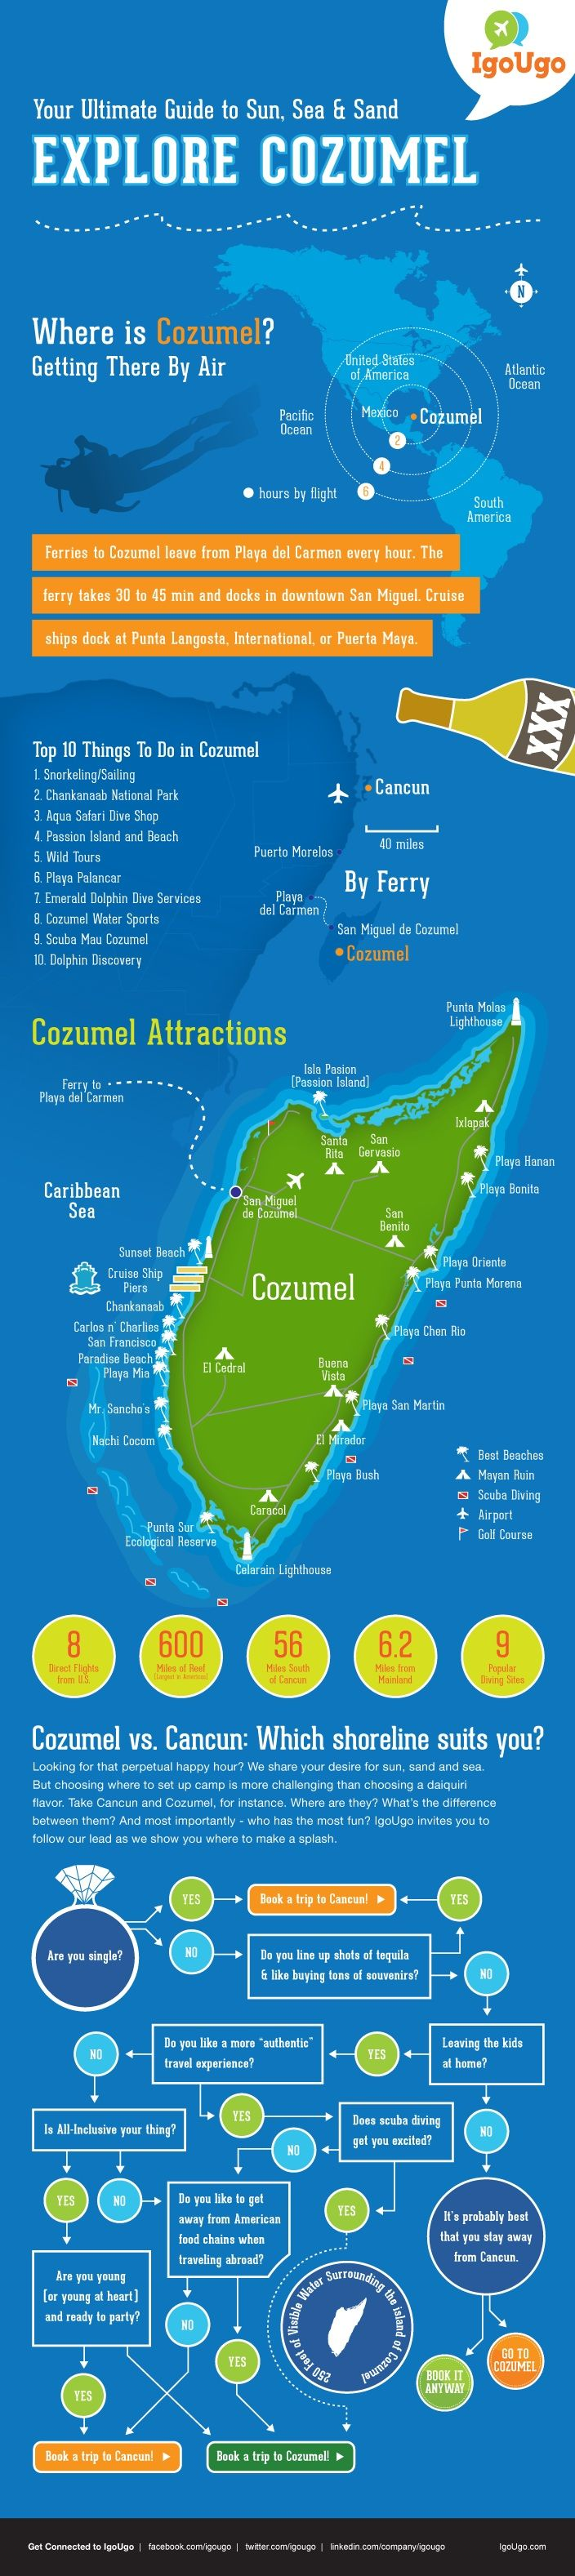 Love Cozumel! We rented a jeep and drove around the entire island stopping at gorgeous beaches to swim!